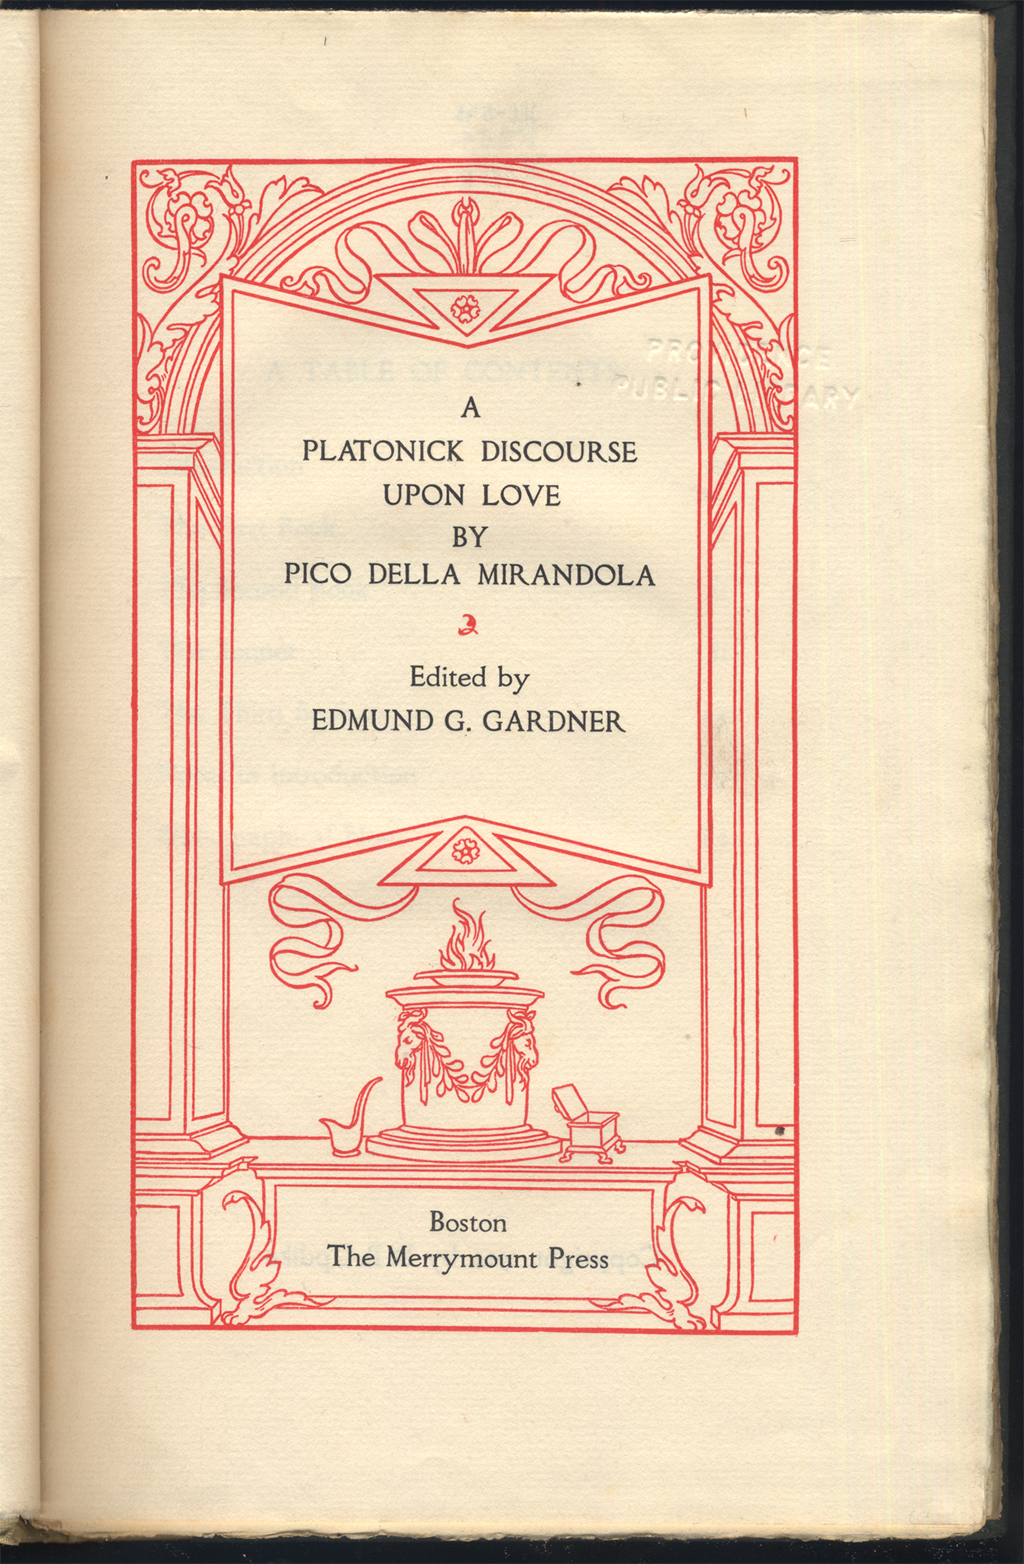 Title page of A Platonick Discourse upon Love by Pico della Mirandola (Boston: The Merrymount Press, 1913). Frame by T.M. Cleland.